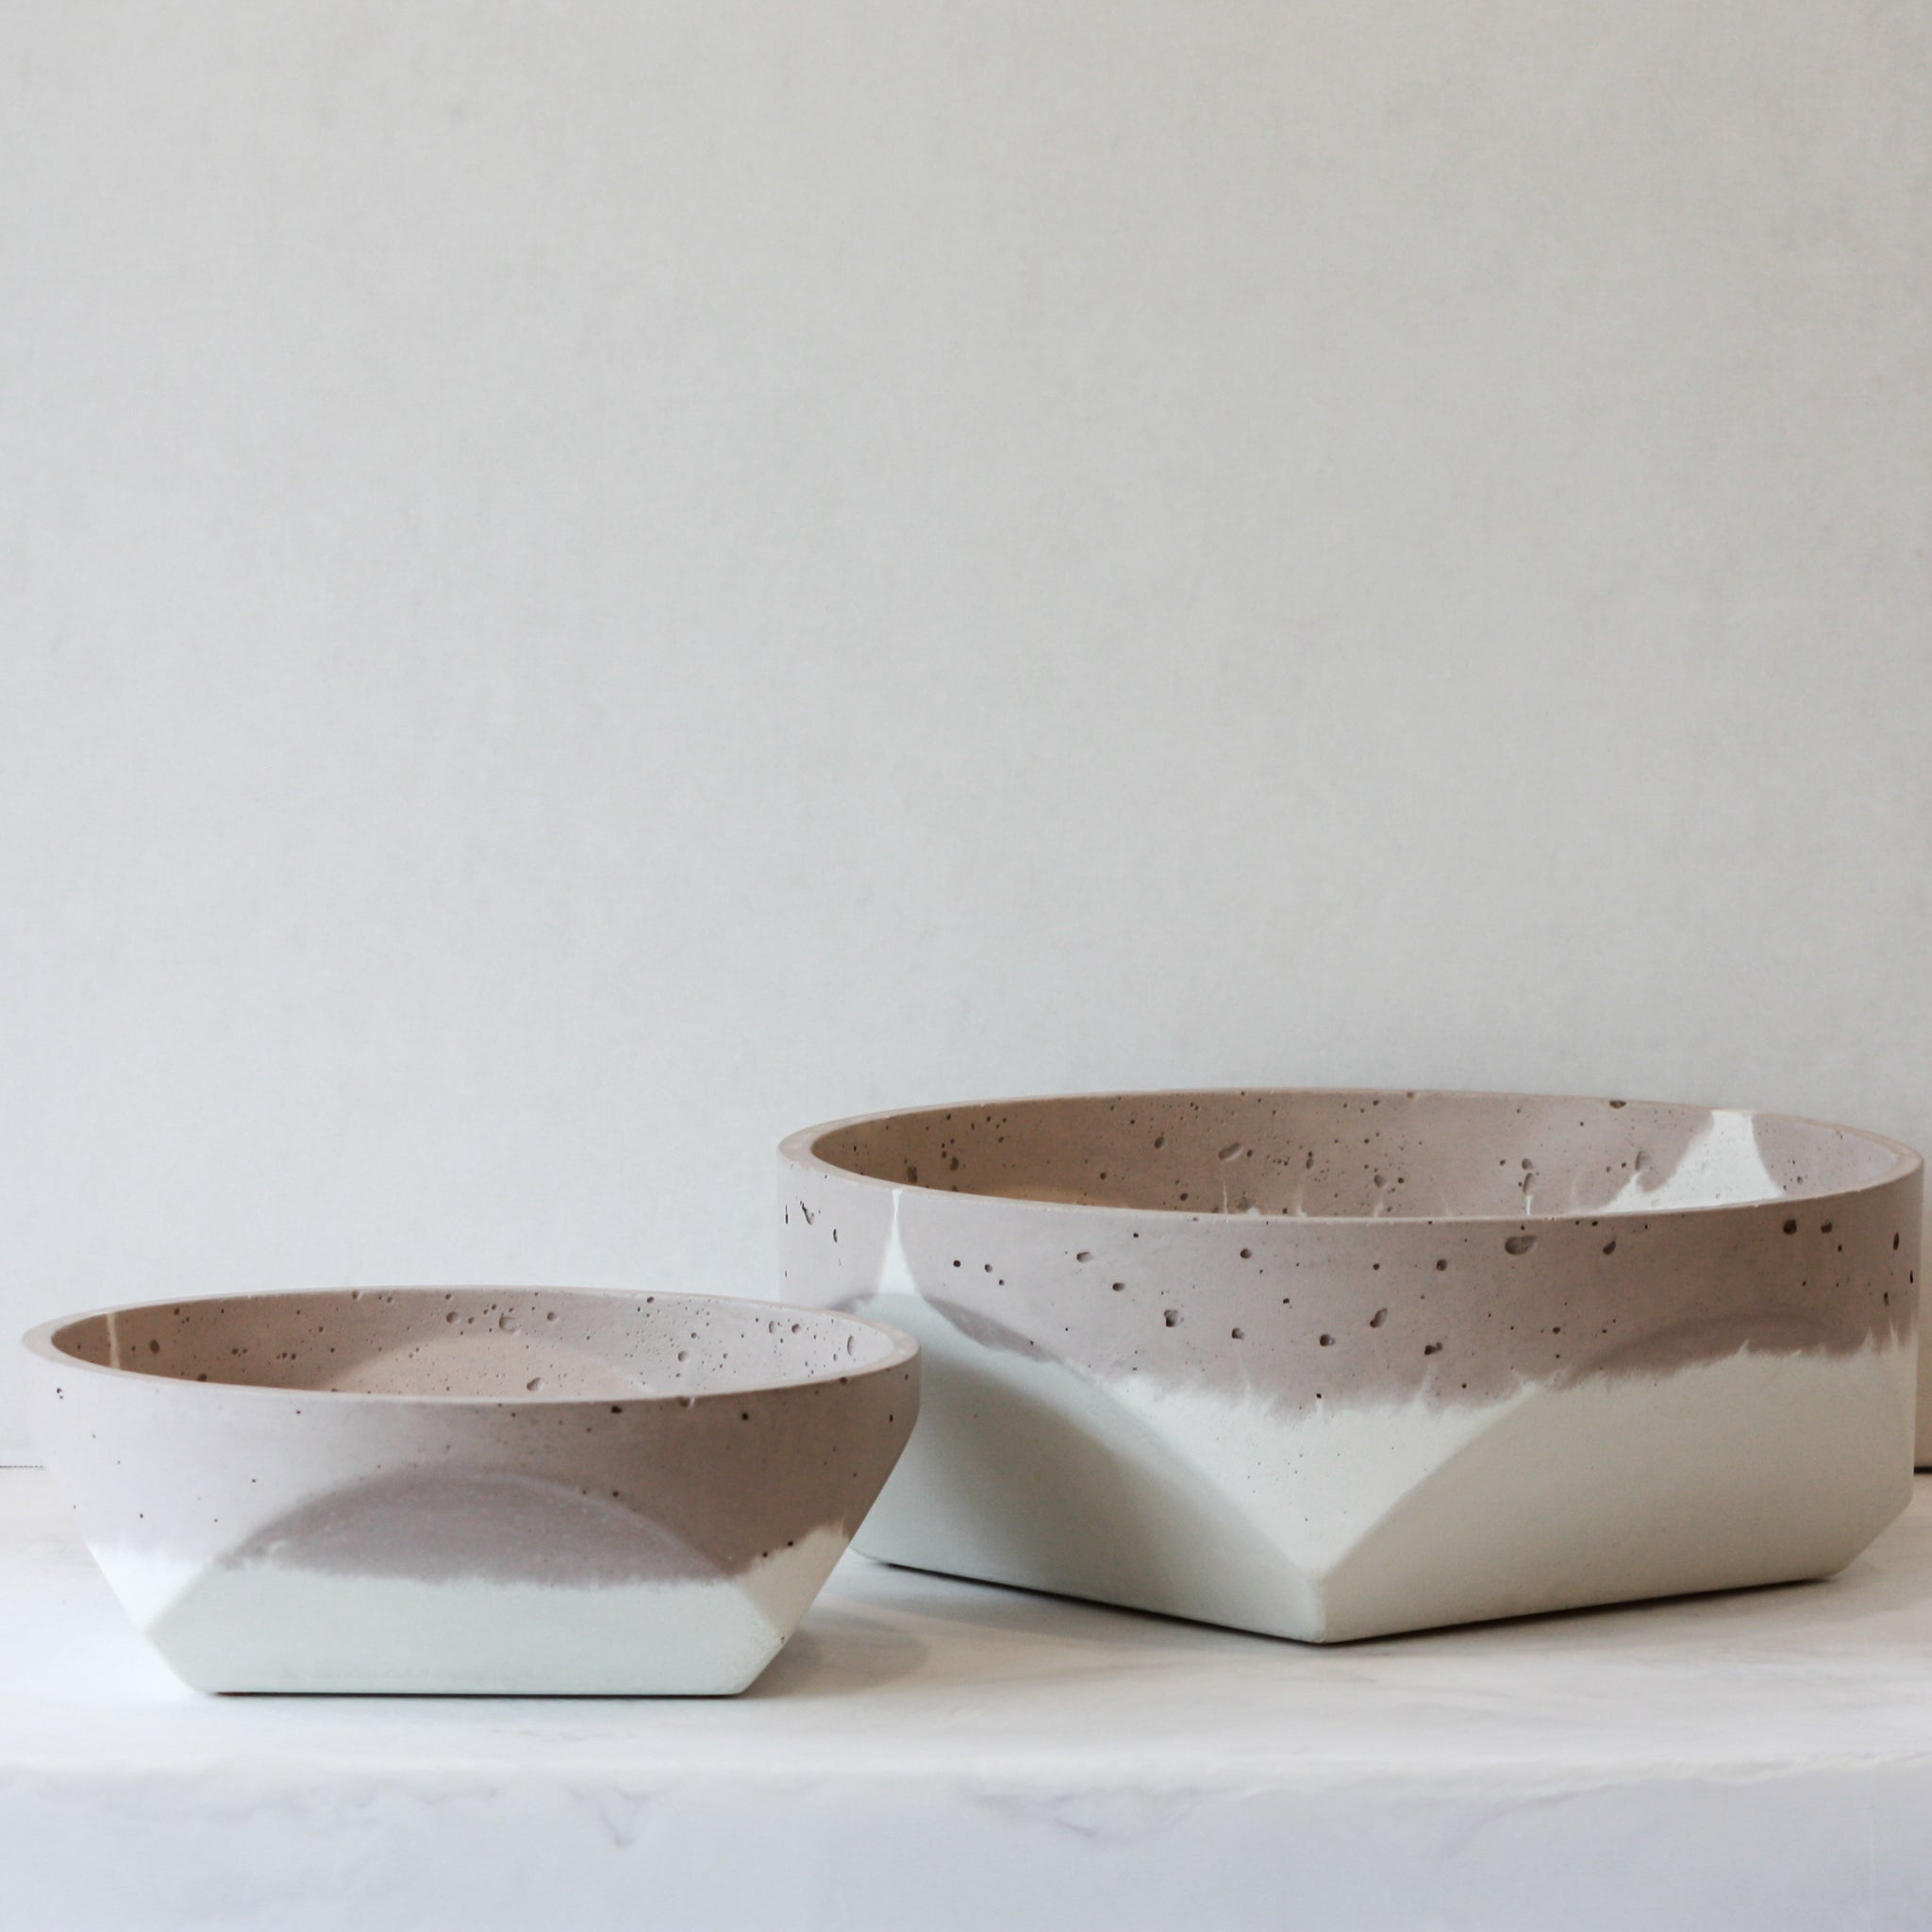 Cori x Anyon Bowls - Desert in small and large